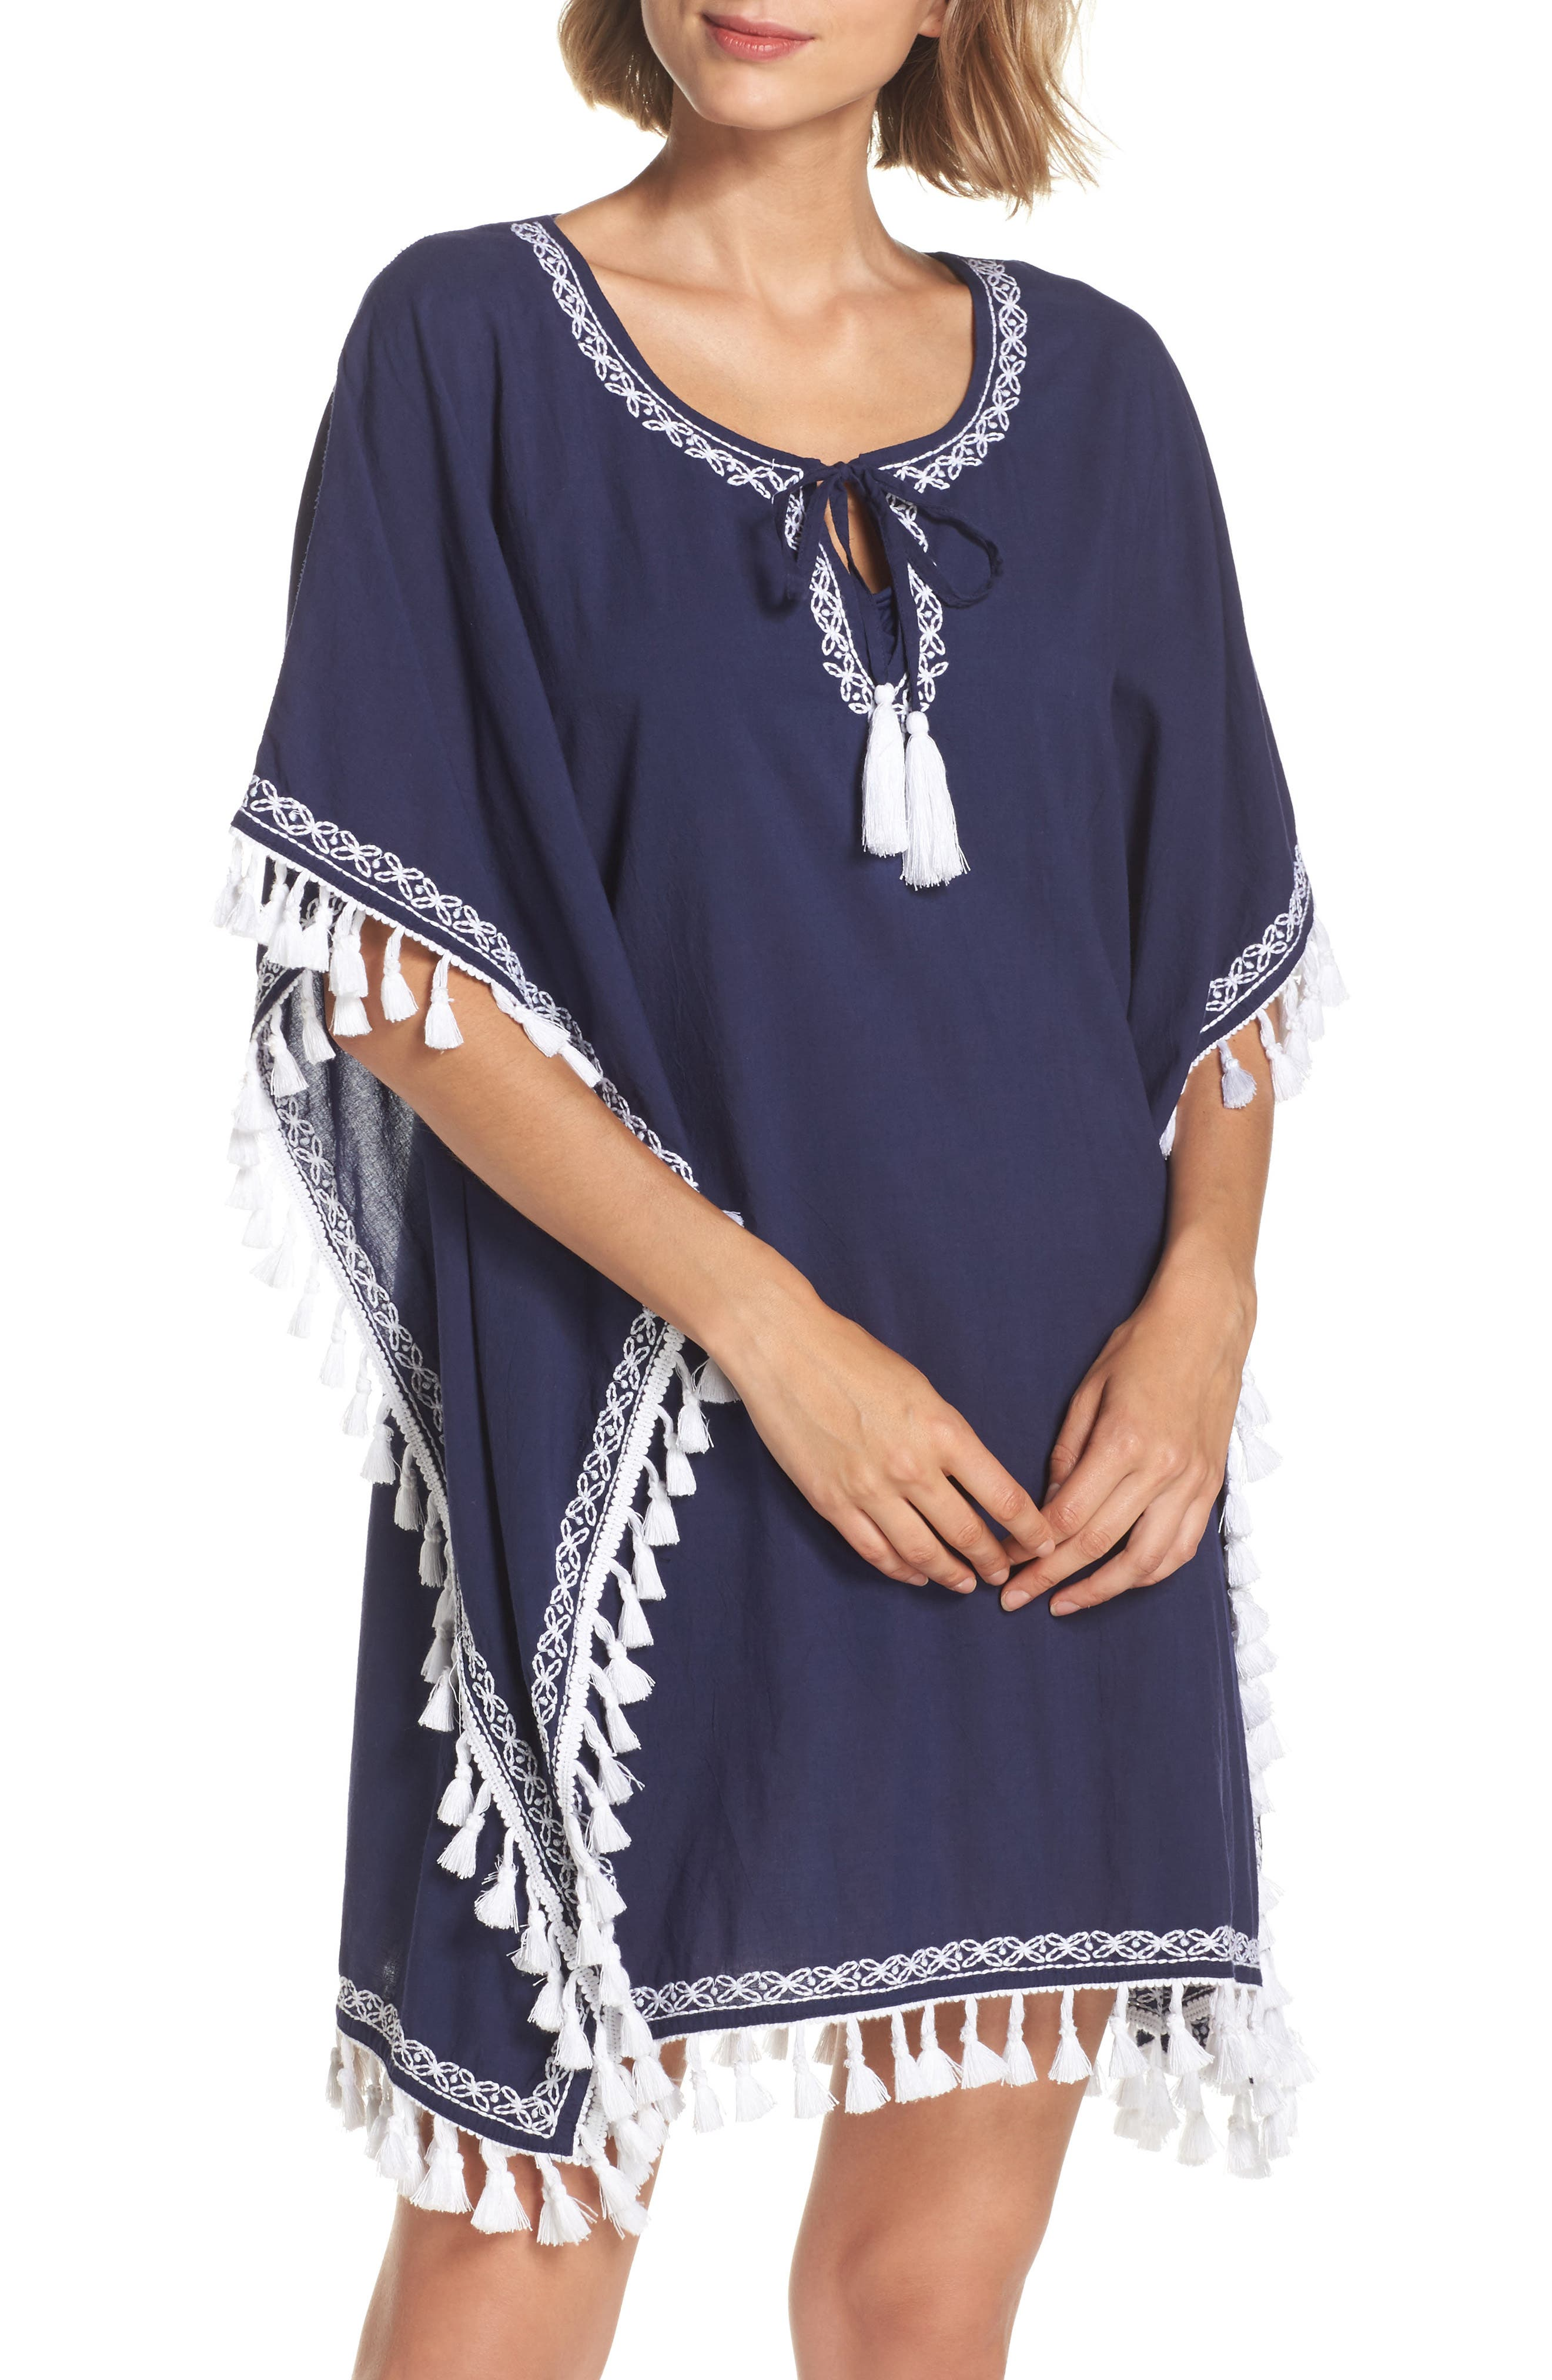 Alternate Image 1 Selected - Tommy Bahama Voile Cover-Up Tunic